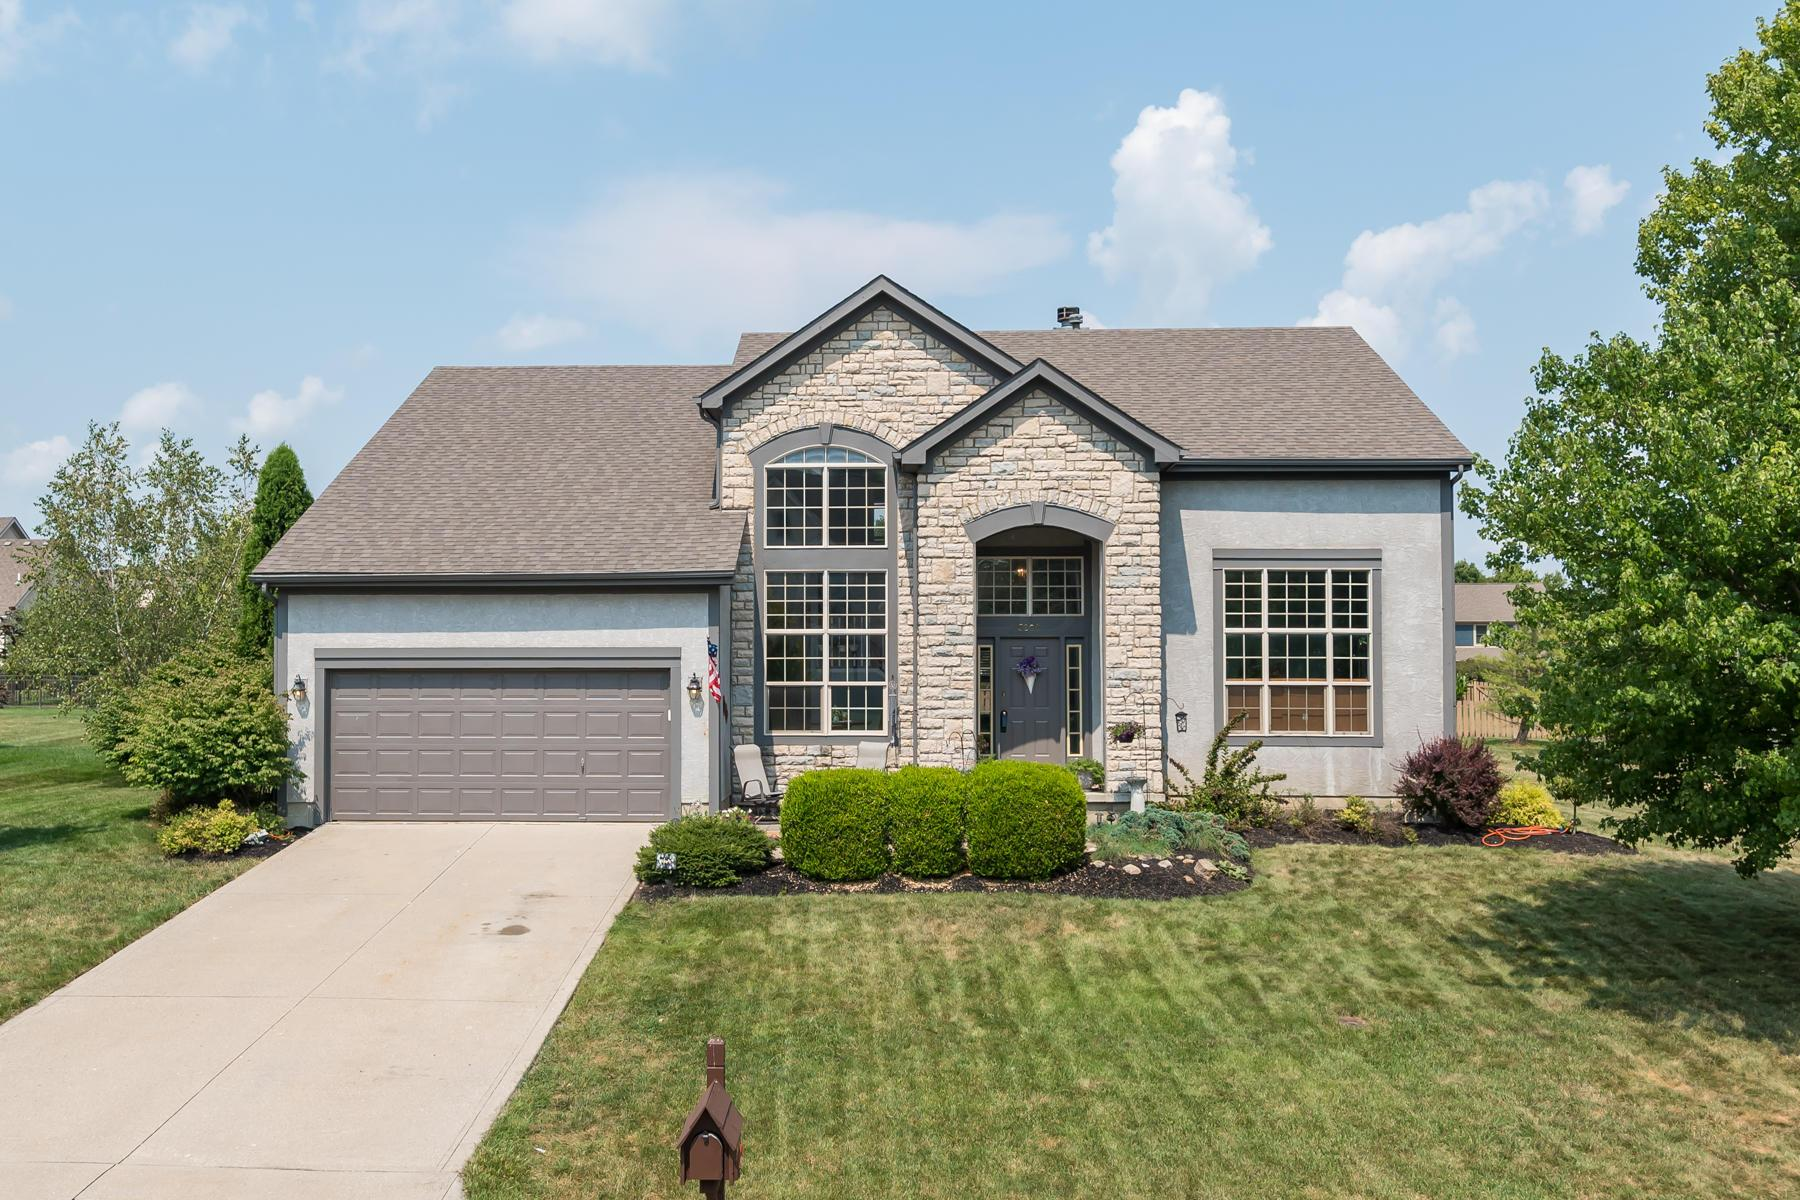 3201 Arctic Avenue, Lewis Center, Ohio 43035, 4 Bedrooms Bedrooms, ,3 BathroomsBathrooms,House,Sold,Arctic Avenue,1010